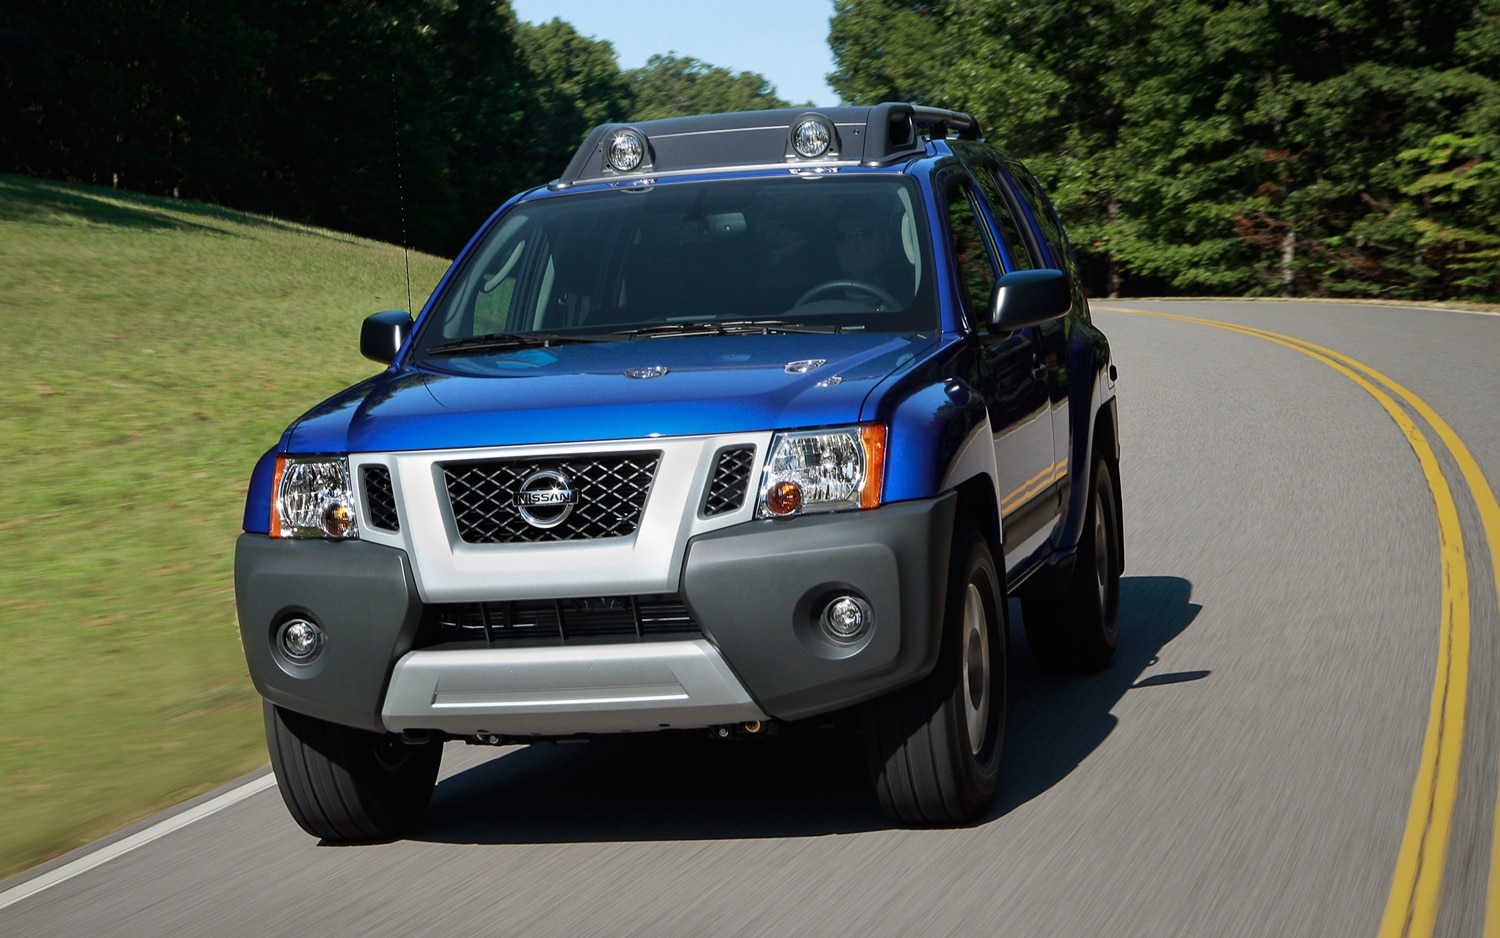 2013 Nissan Xterra Front View In Motion